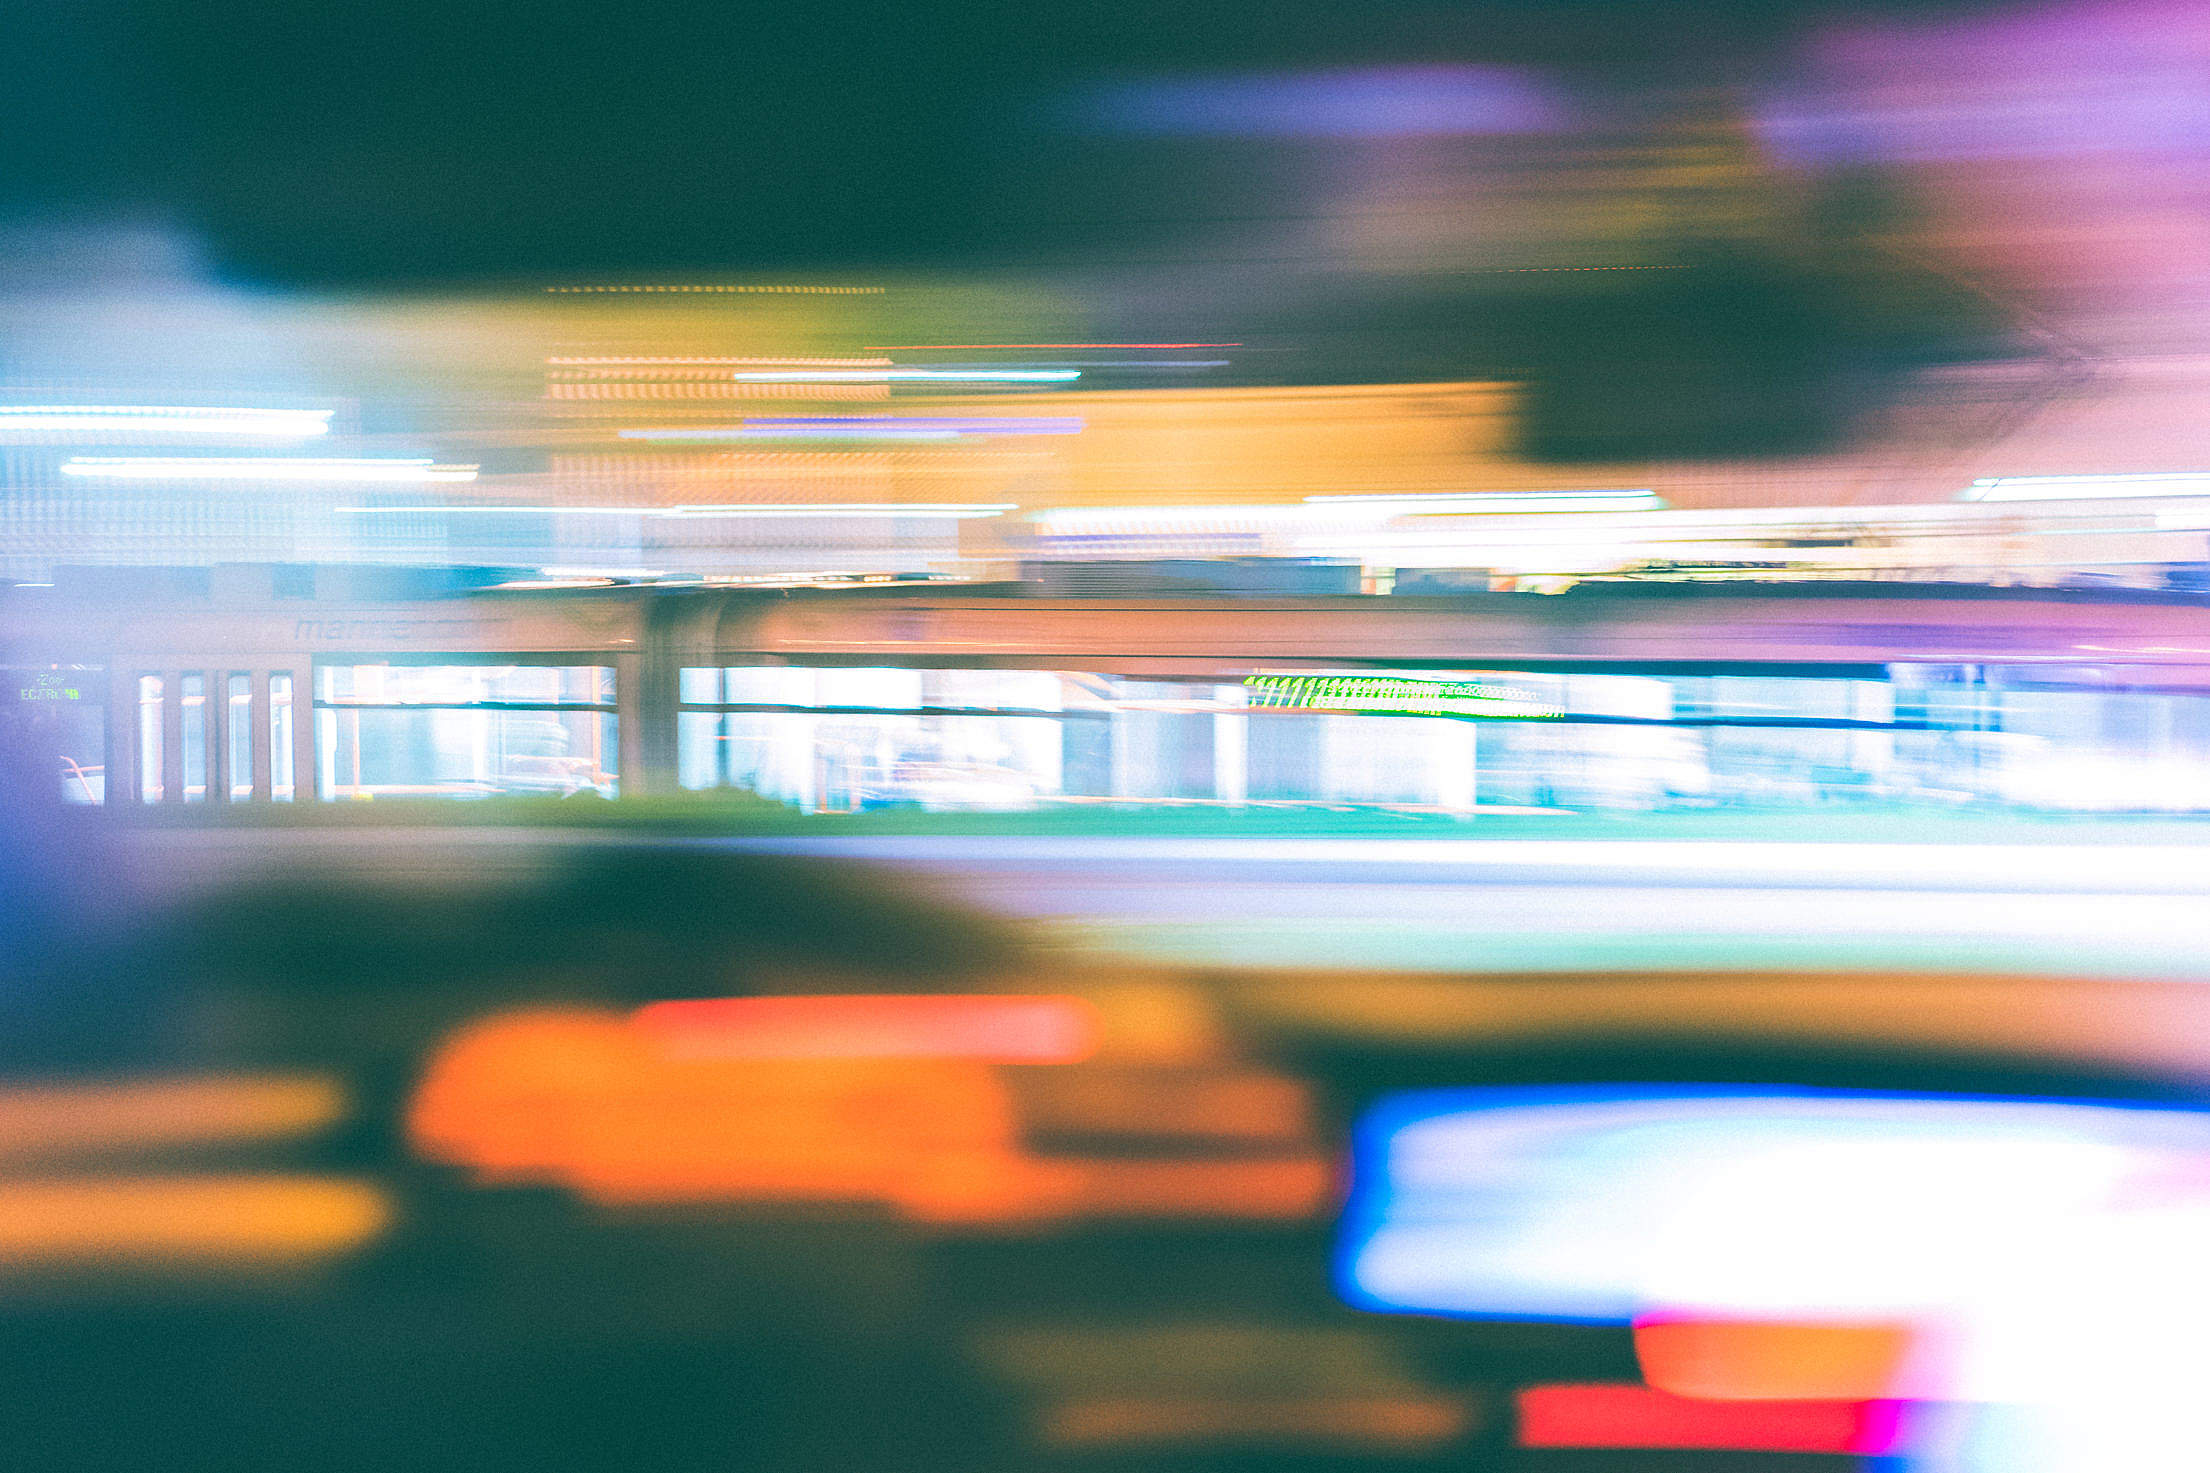 Psychedelic Night Tram Ride Free Stock Photo